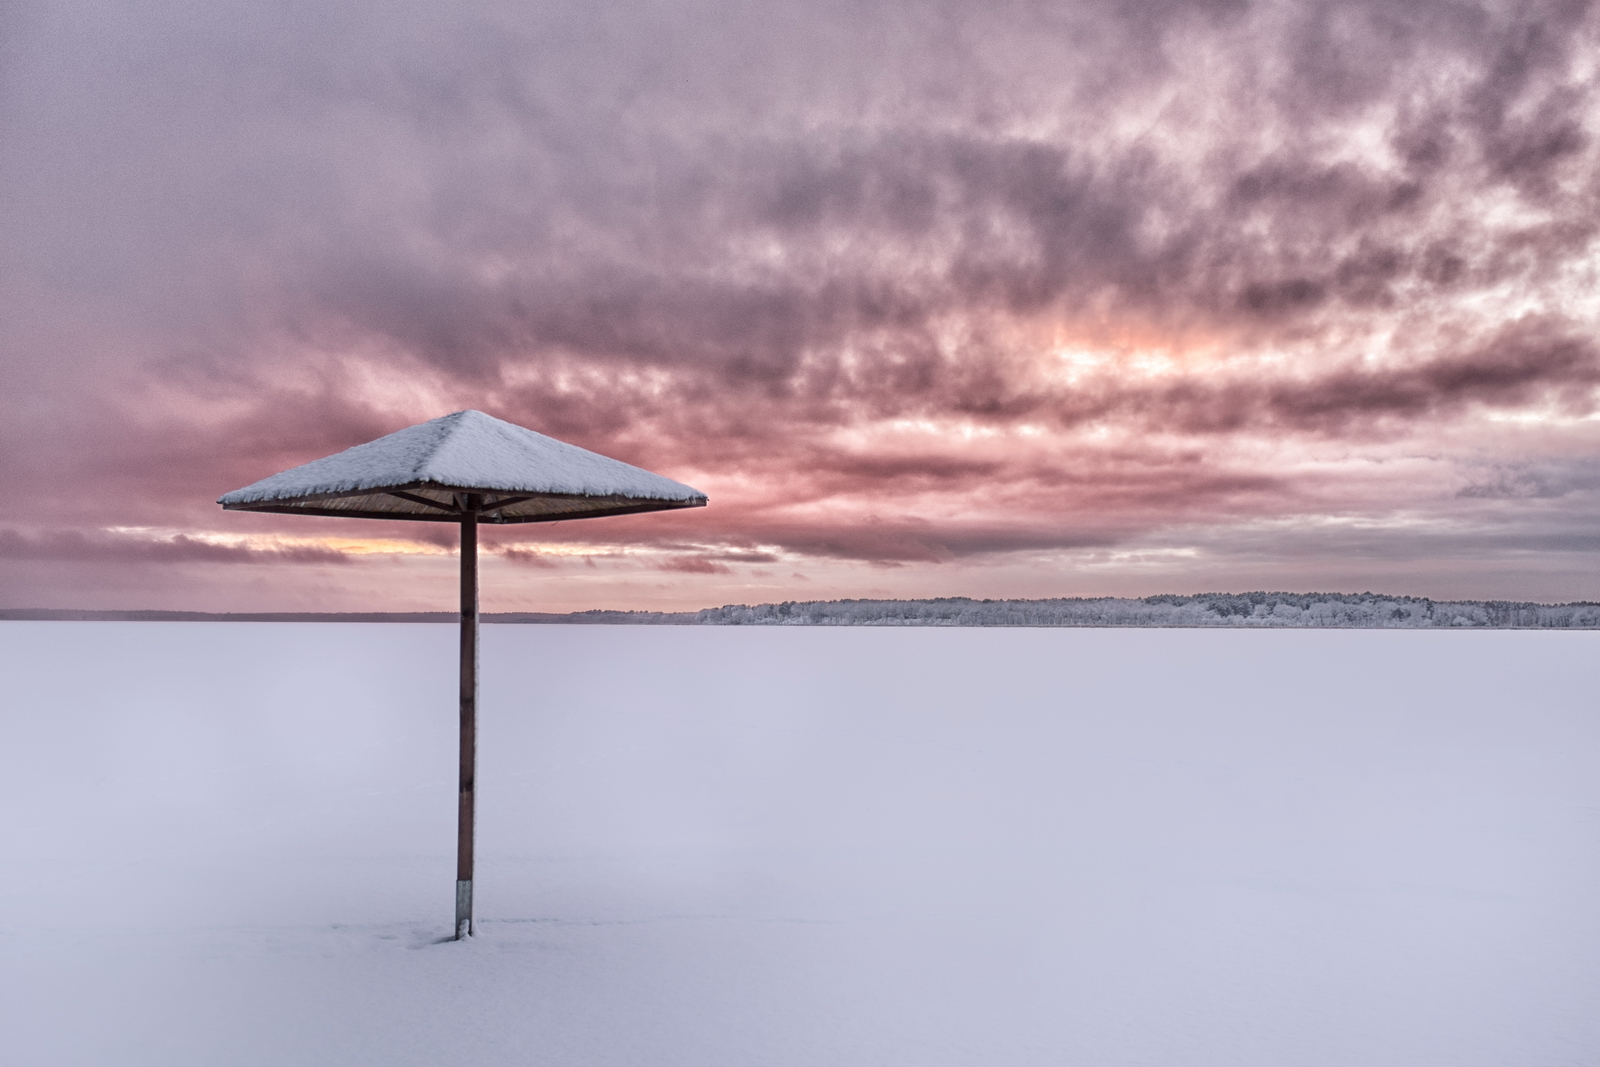 Nowowarpieńskie Sunset –beach and the frozen lake Nowowarpieńskie just after the snowfall on Sunset. Fuji X100s, 1/100s, f8, ISO 200